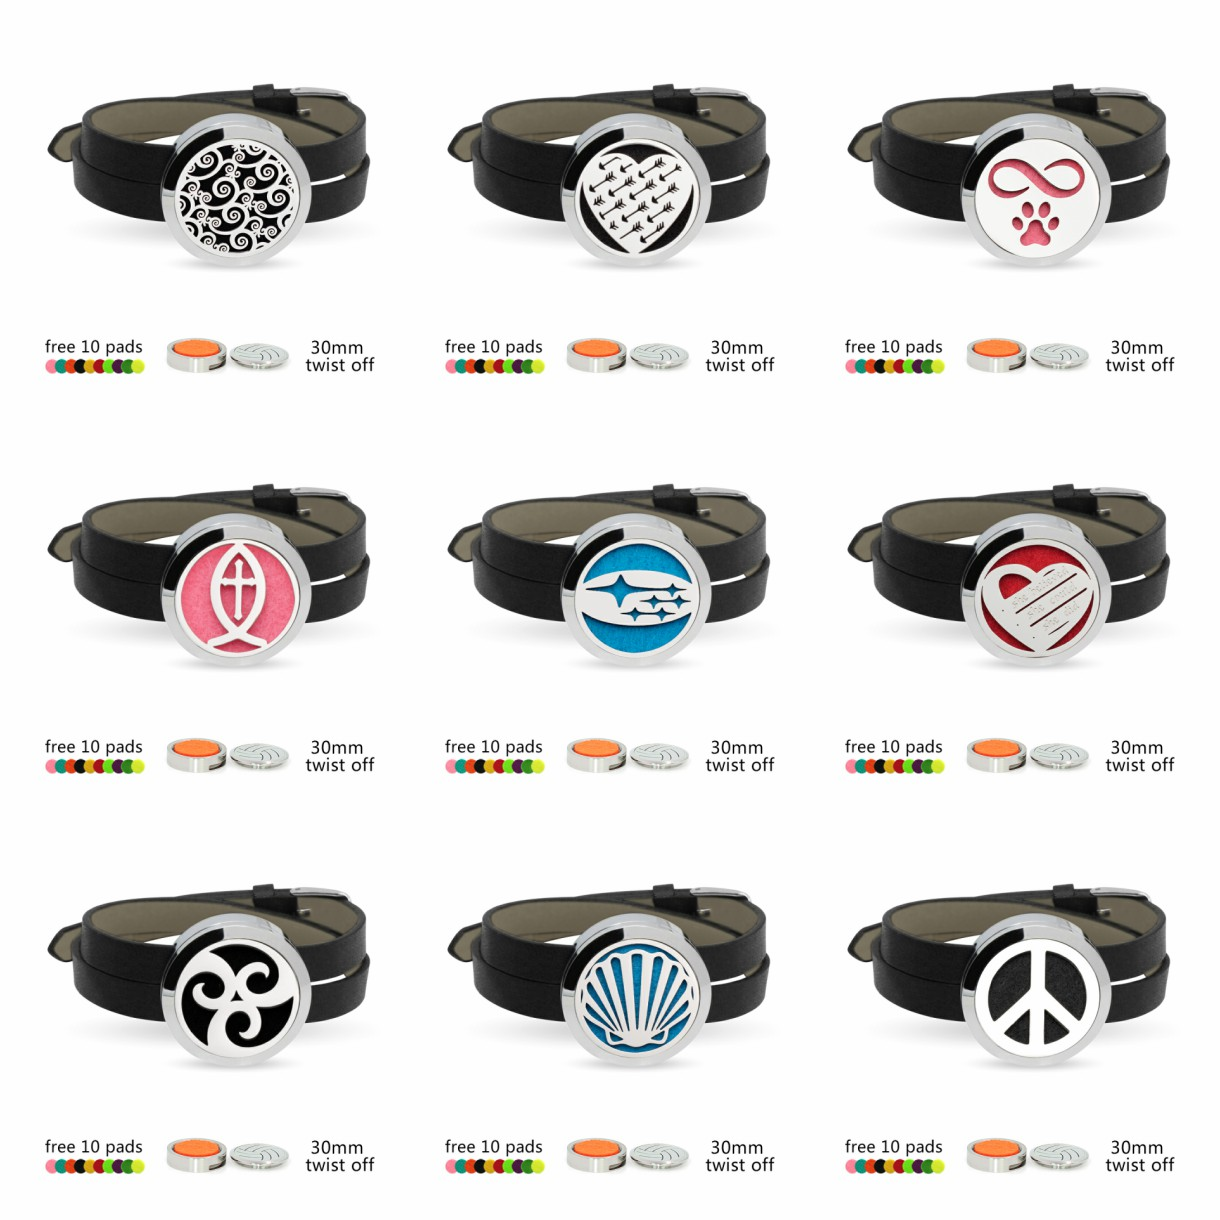 Aromatherapy Pu Leather Stainless Steel Aroma Essential Oil Diffuser Locket Bracelet+10pads Natural & Alternative Remedies